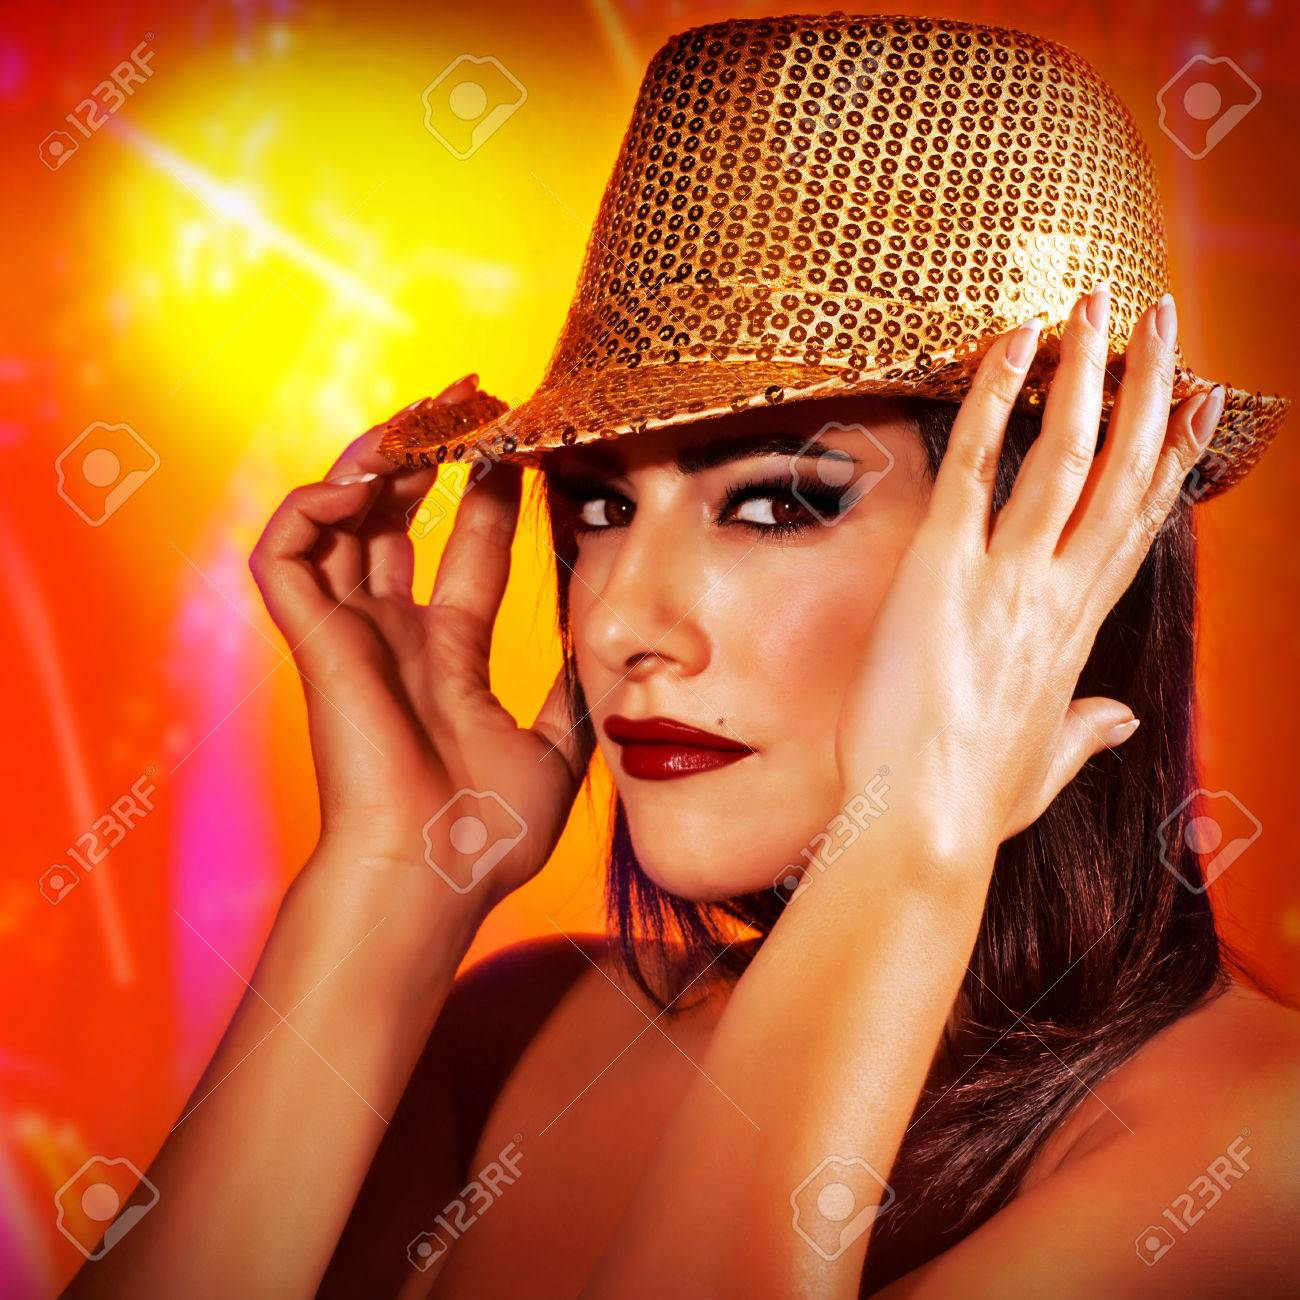 Closeup portrait of beautiful woman wearing golden shiny hat on red background, disco club, New Year celebration, fashion concept Stock Photo - 24262563